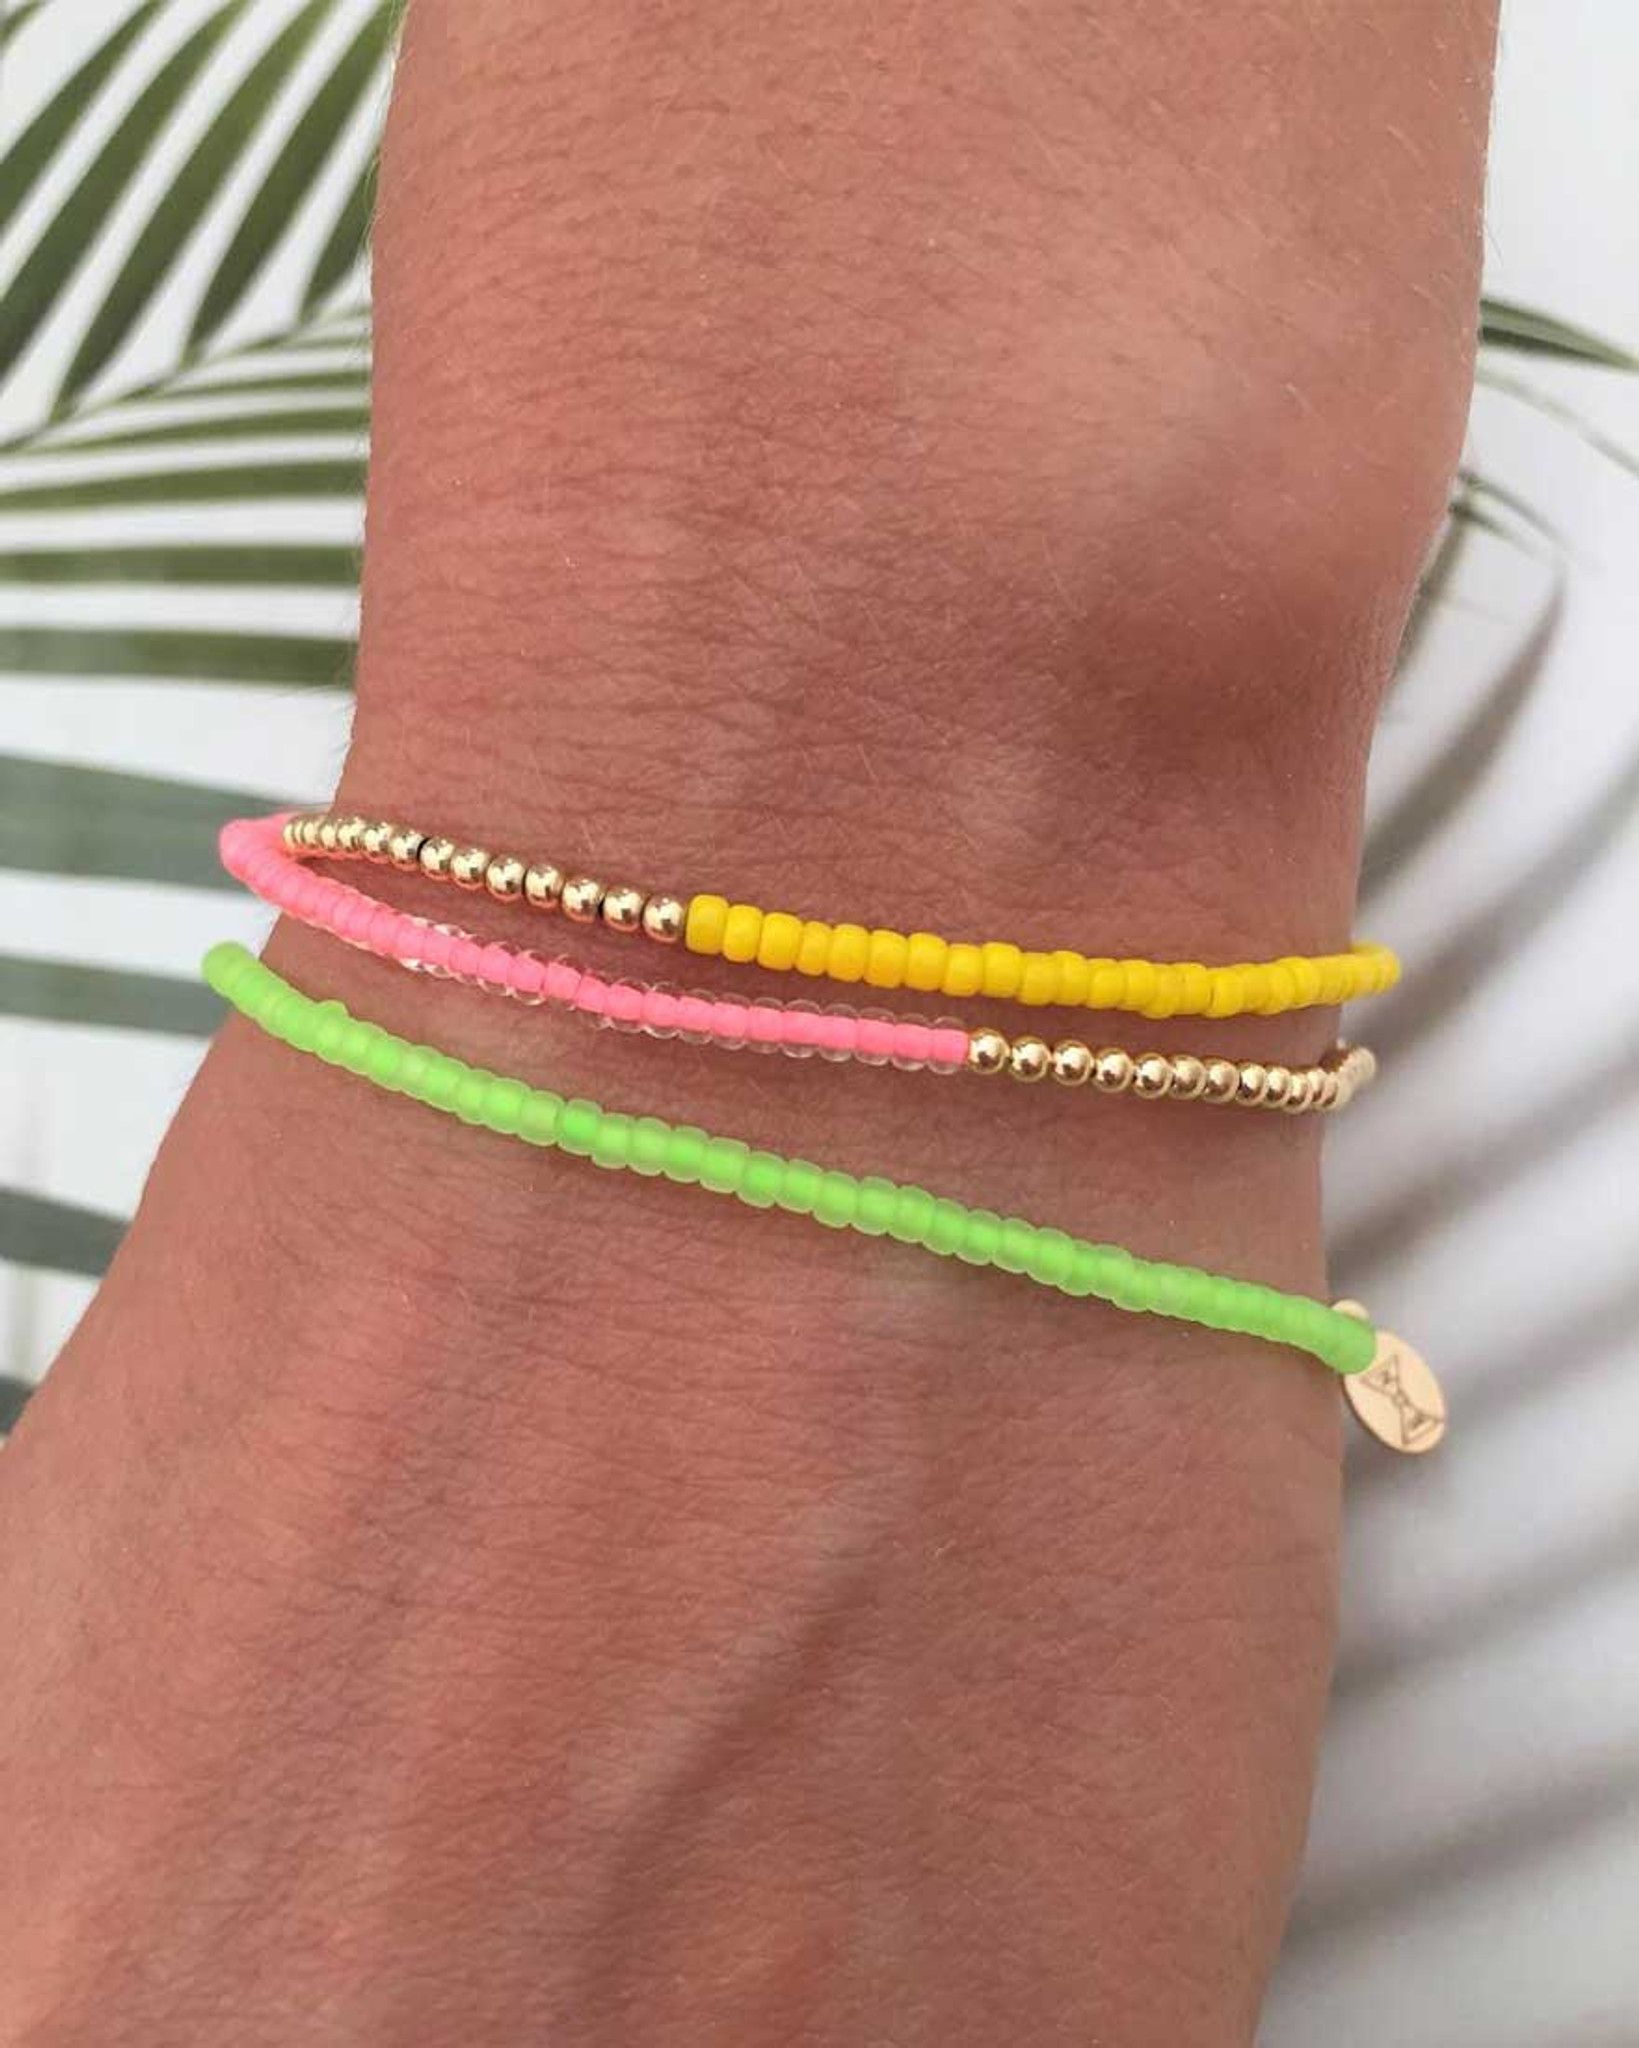 14k Gold and Pink, Yellow, or Green Neon Bead Friendship Delicate Bracelets by Fine Jewelry Designer Nektar De Stagni